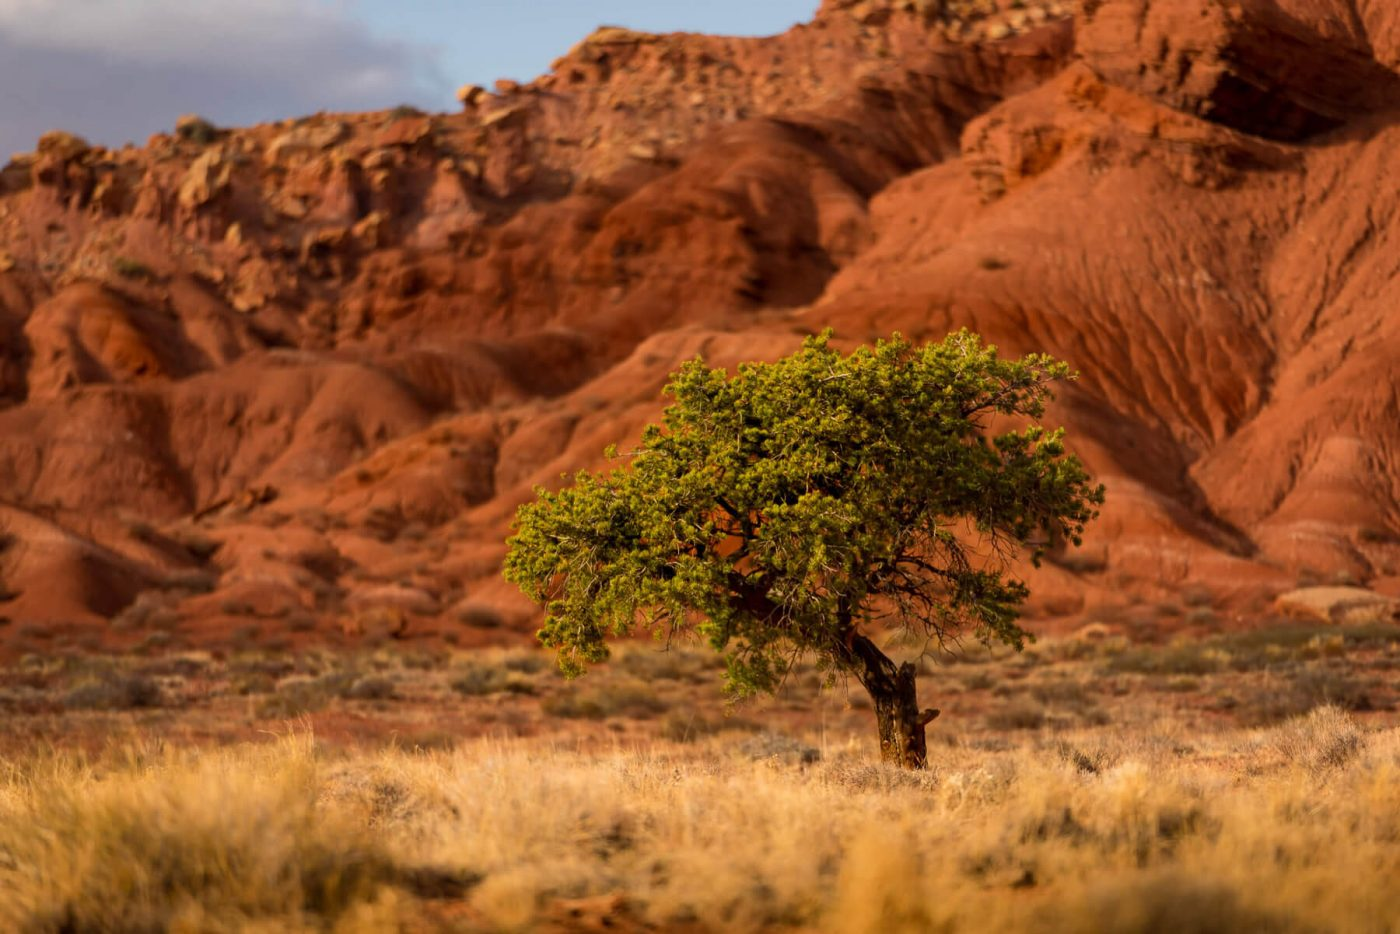 LONELY TREE – PHOTO DISSECTION